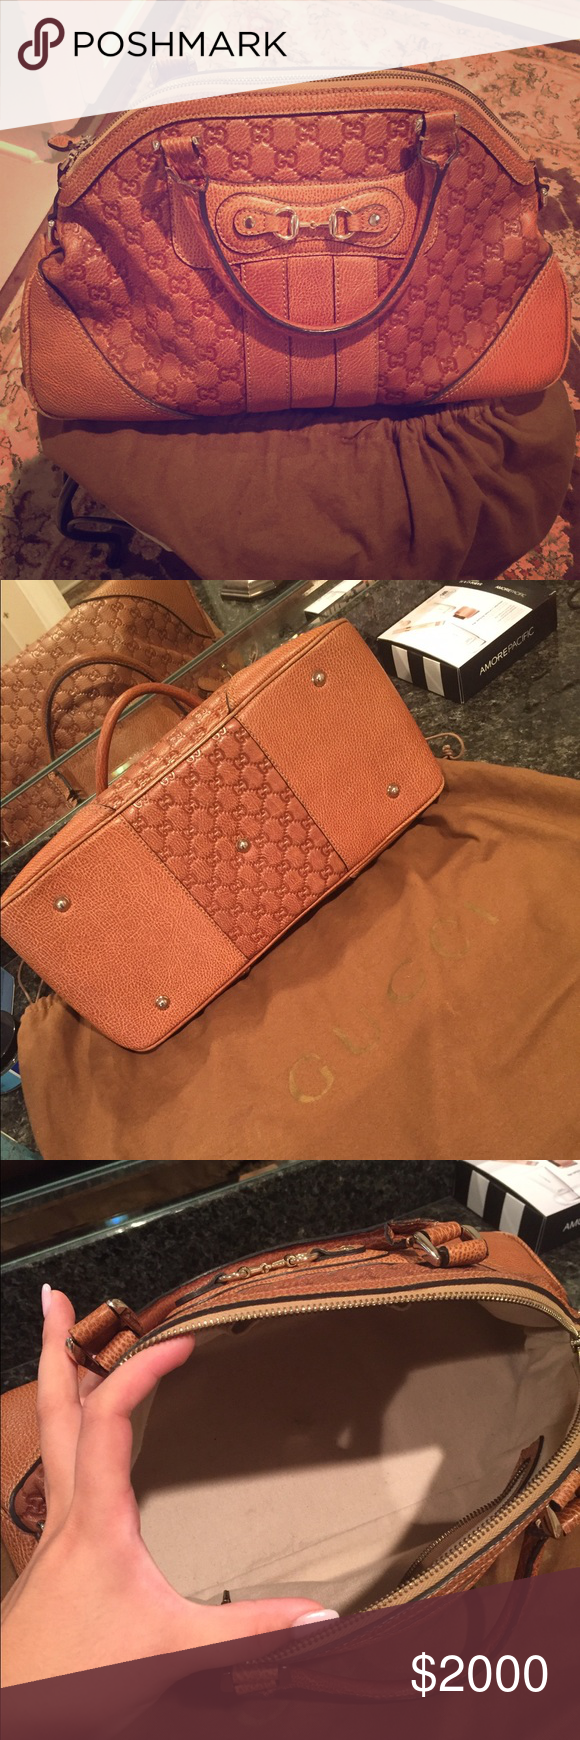 Gucci Guccissima in Cognac monogram AMAZING CONDITION. no stains, smells or tears! 100% Authentic. Date code hard to read but it IS there!! purchased in 2010 in Houston, TX Galleria. Price negotiable, trade offers welcome. (comes with dustbag) Gucci Bags Shoulder Bags